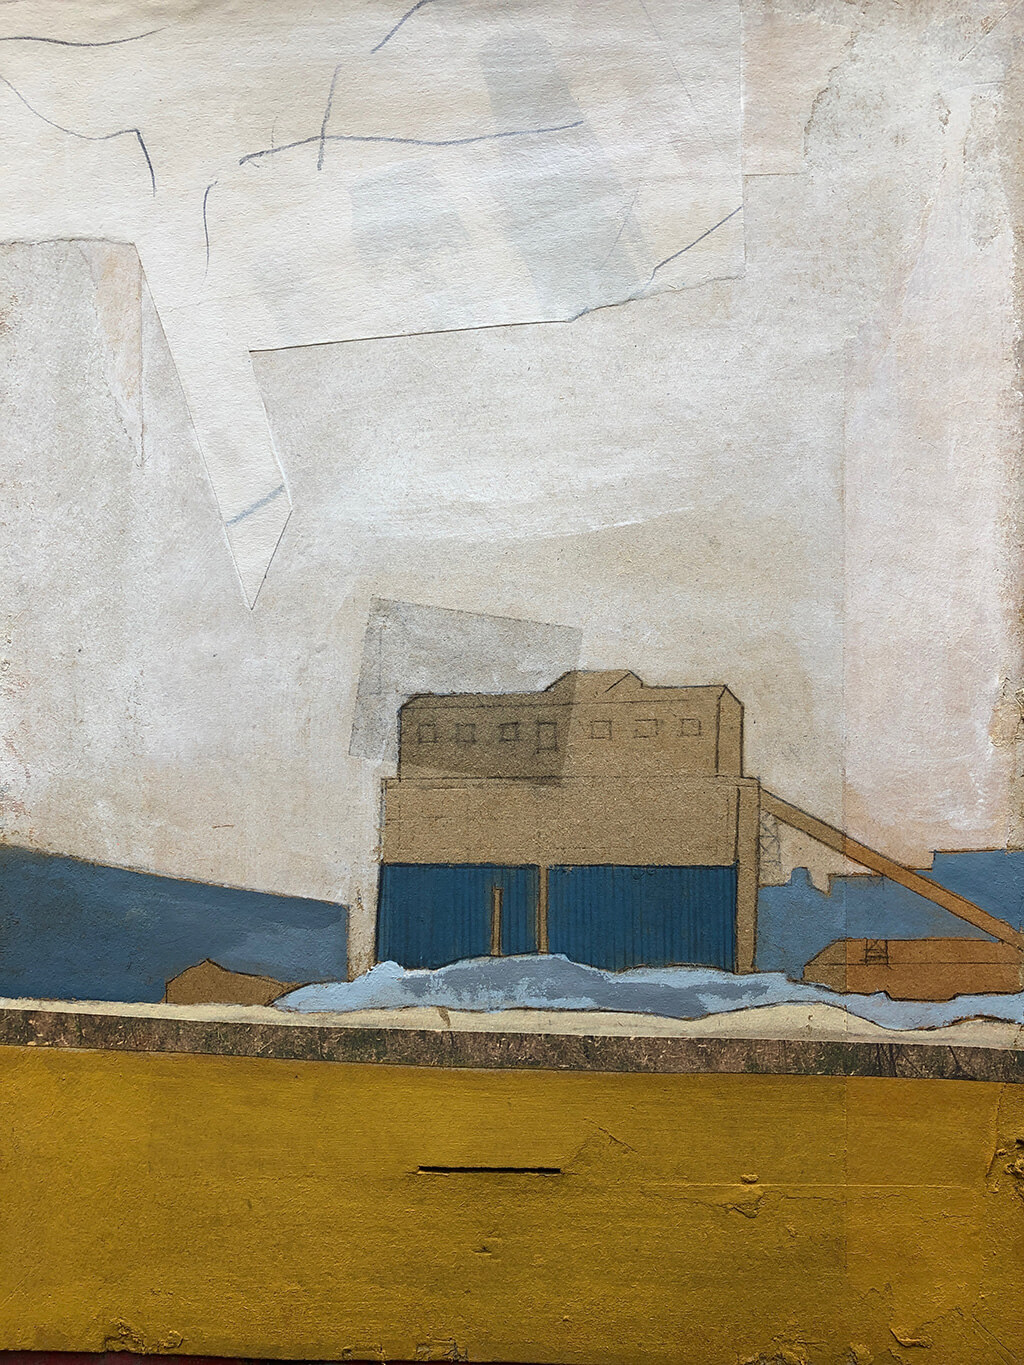 Silo, Mixed media on cardboard